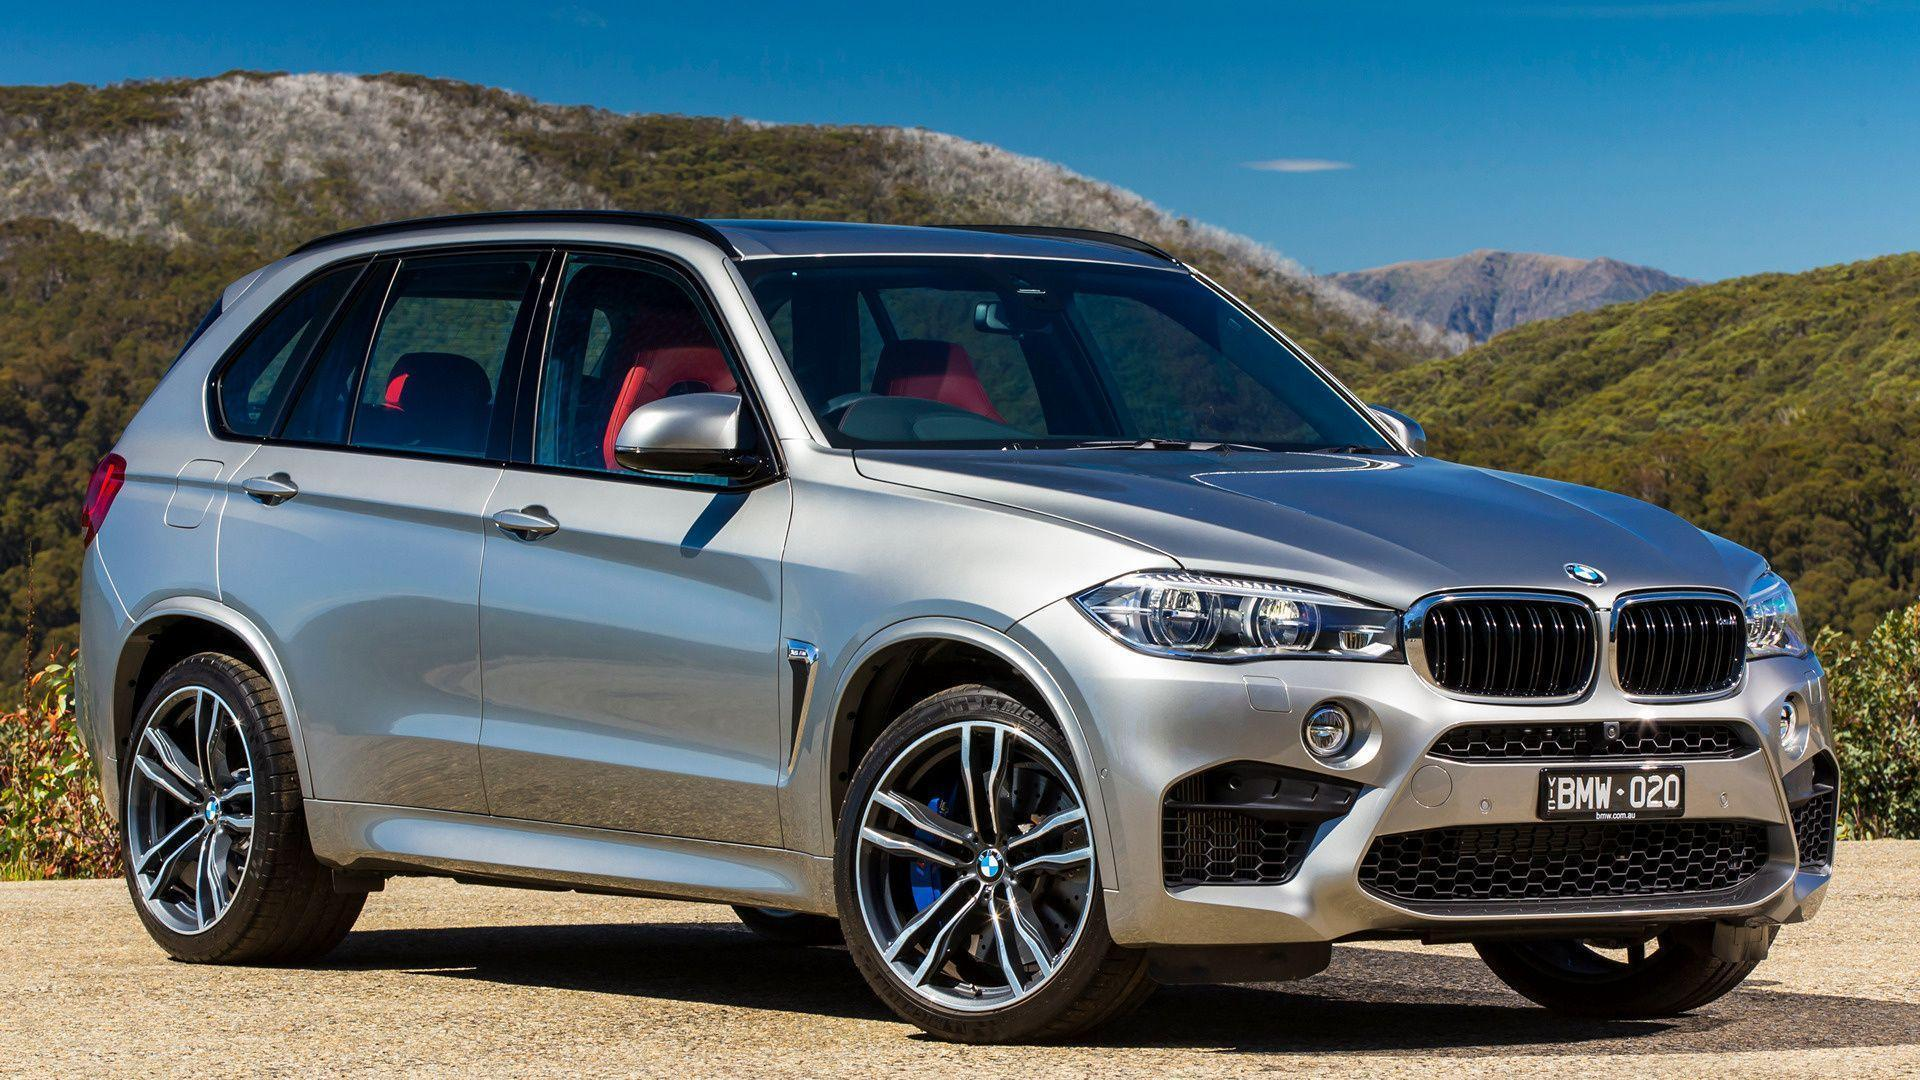 Bmw X5 Wallpapers Wallpaper Cave